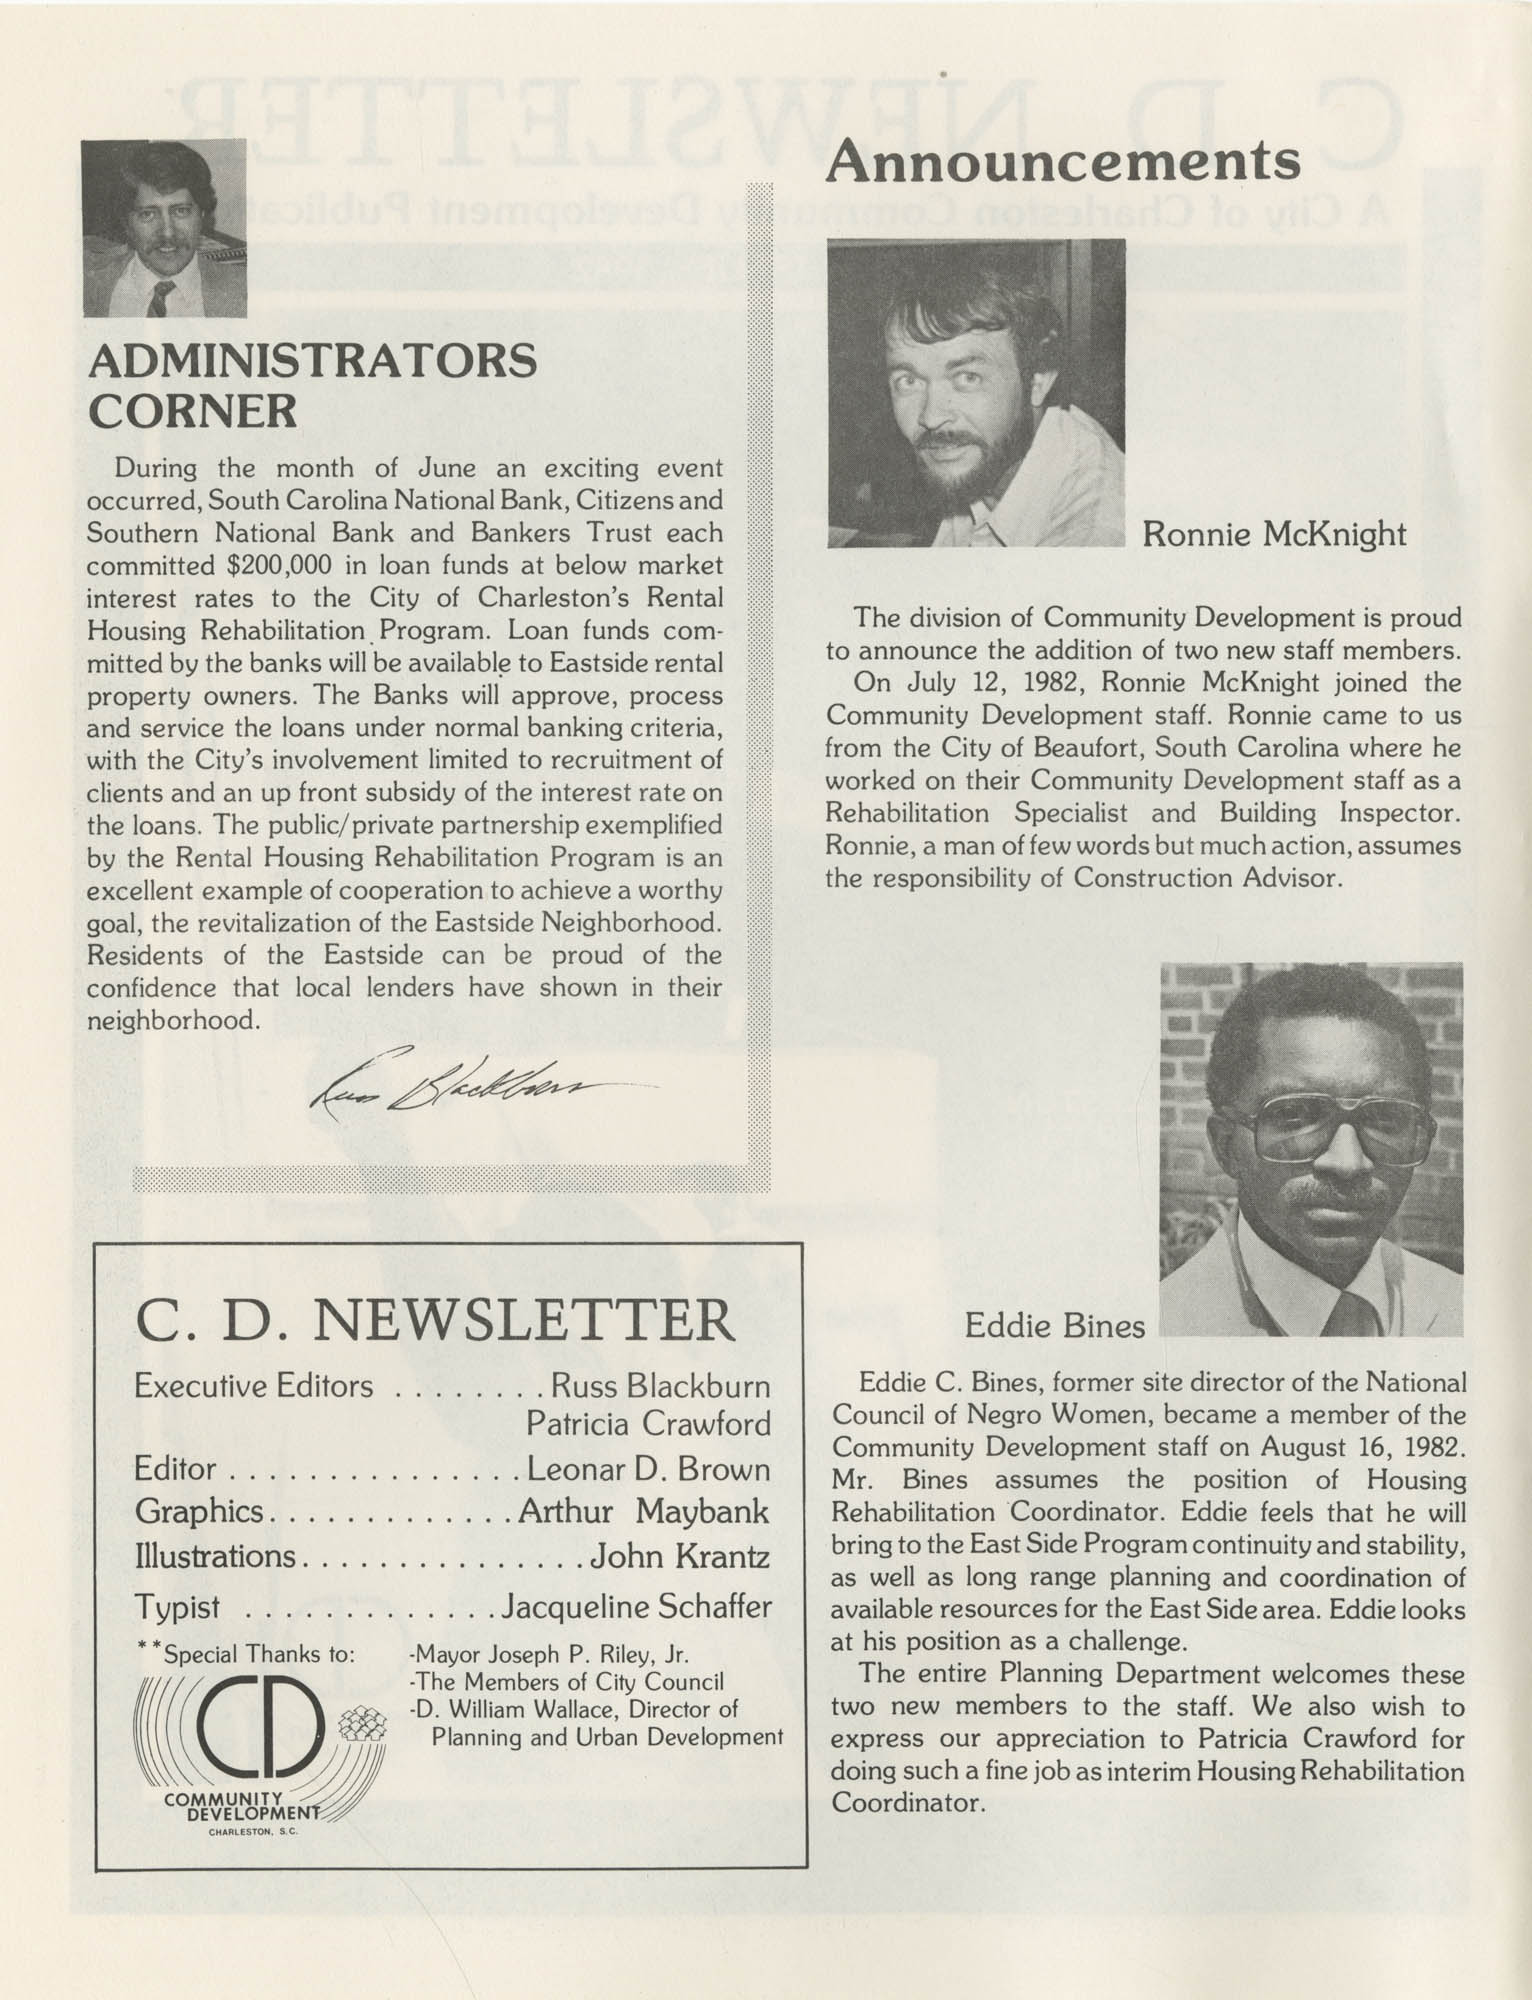 C. D. Newsletter, A City of Charleston Community Development Publication, Summer Issue - 1982, Page 1